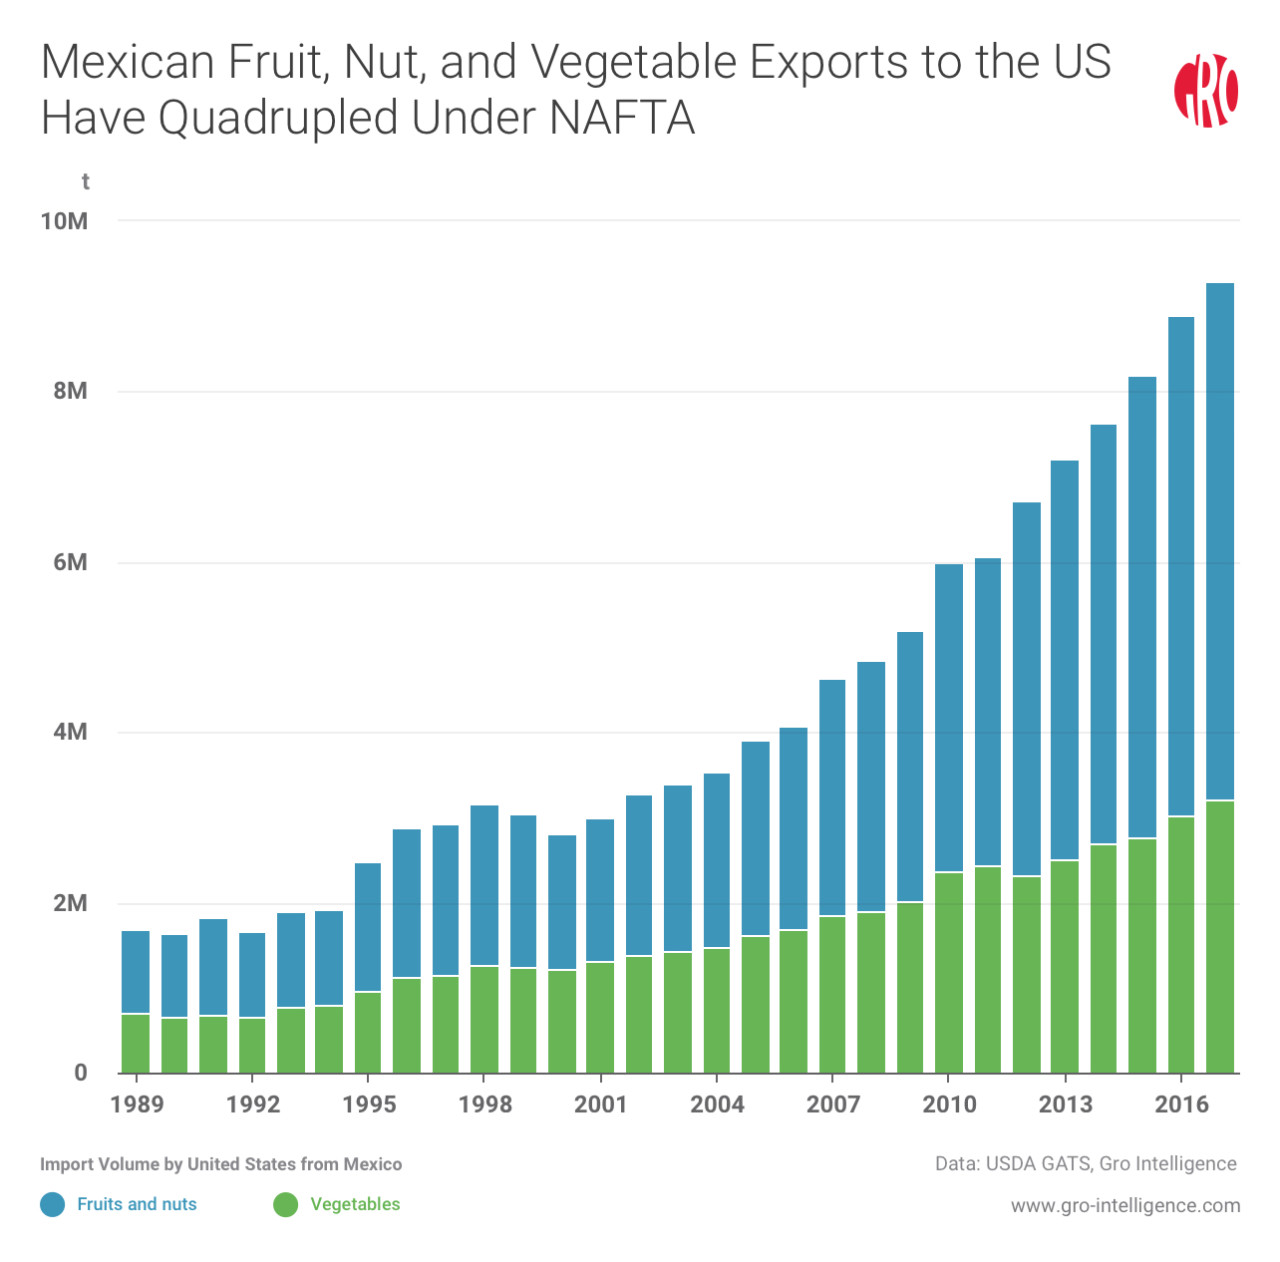 Mexican Fruit, Nut, and Vegetable Exports to the US Have Quadrupled Under NAFTA